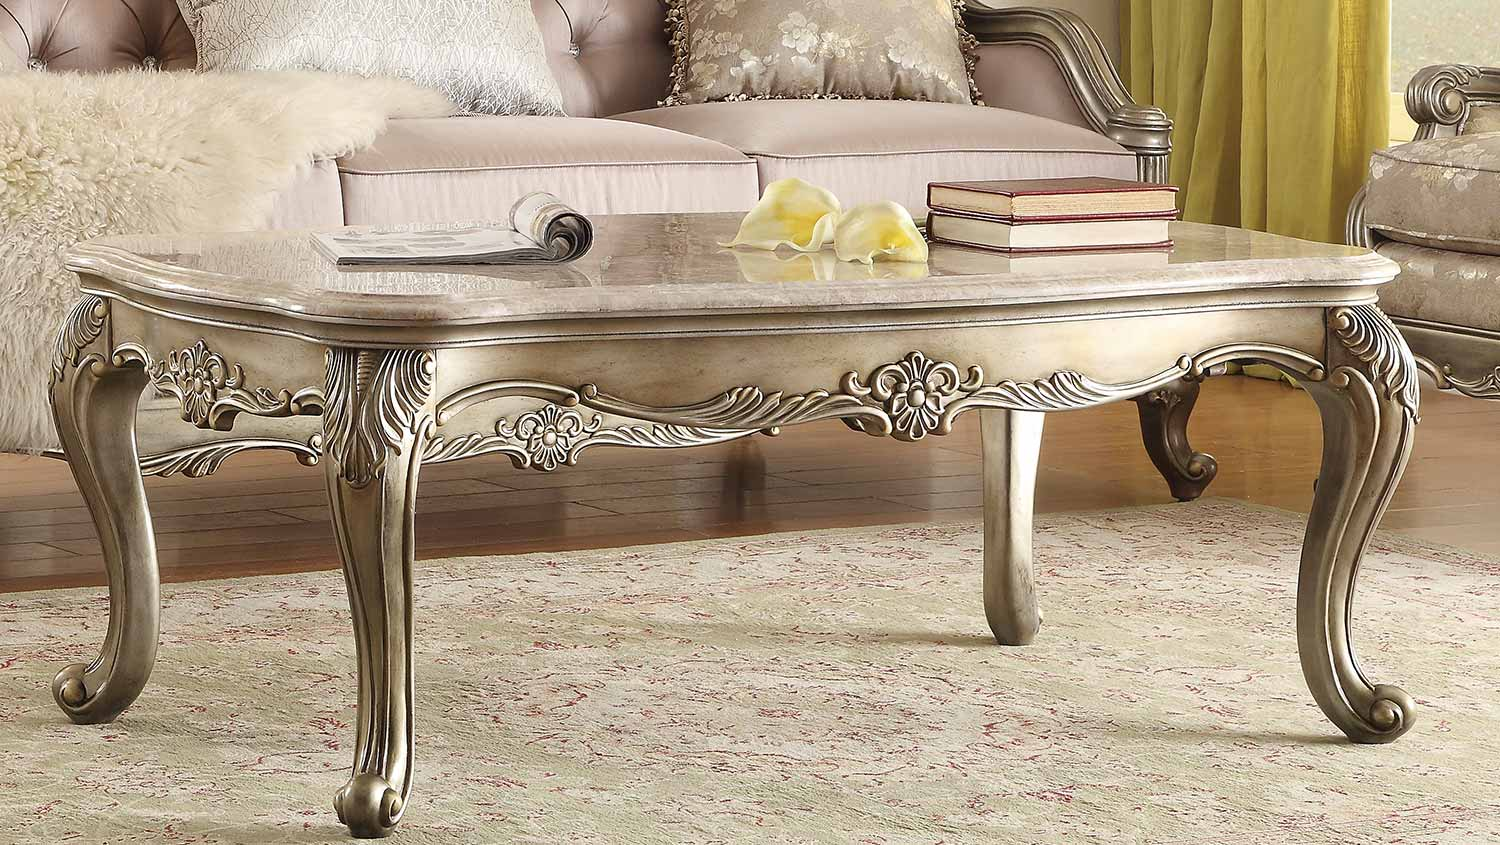 Homelegance Fiorella Cocktail/Coffee Table - Silver/Gold